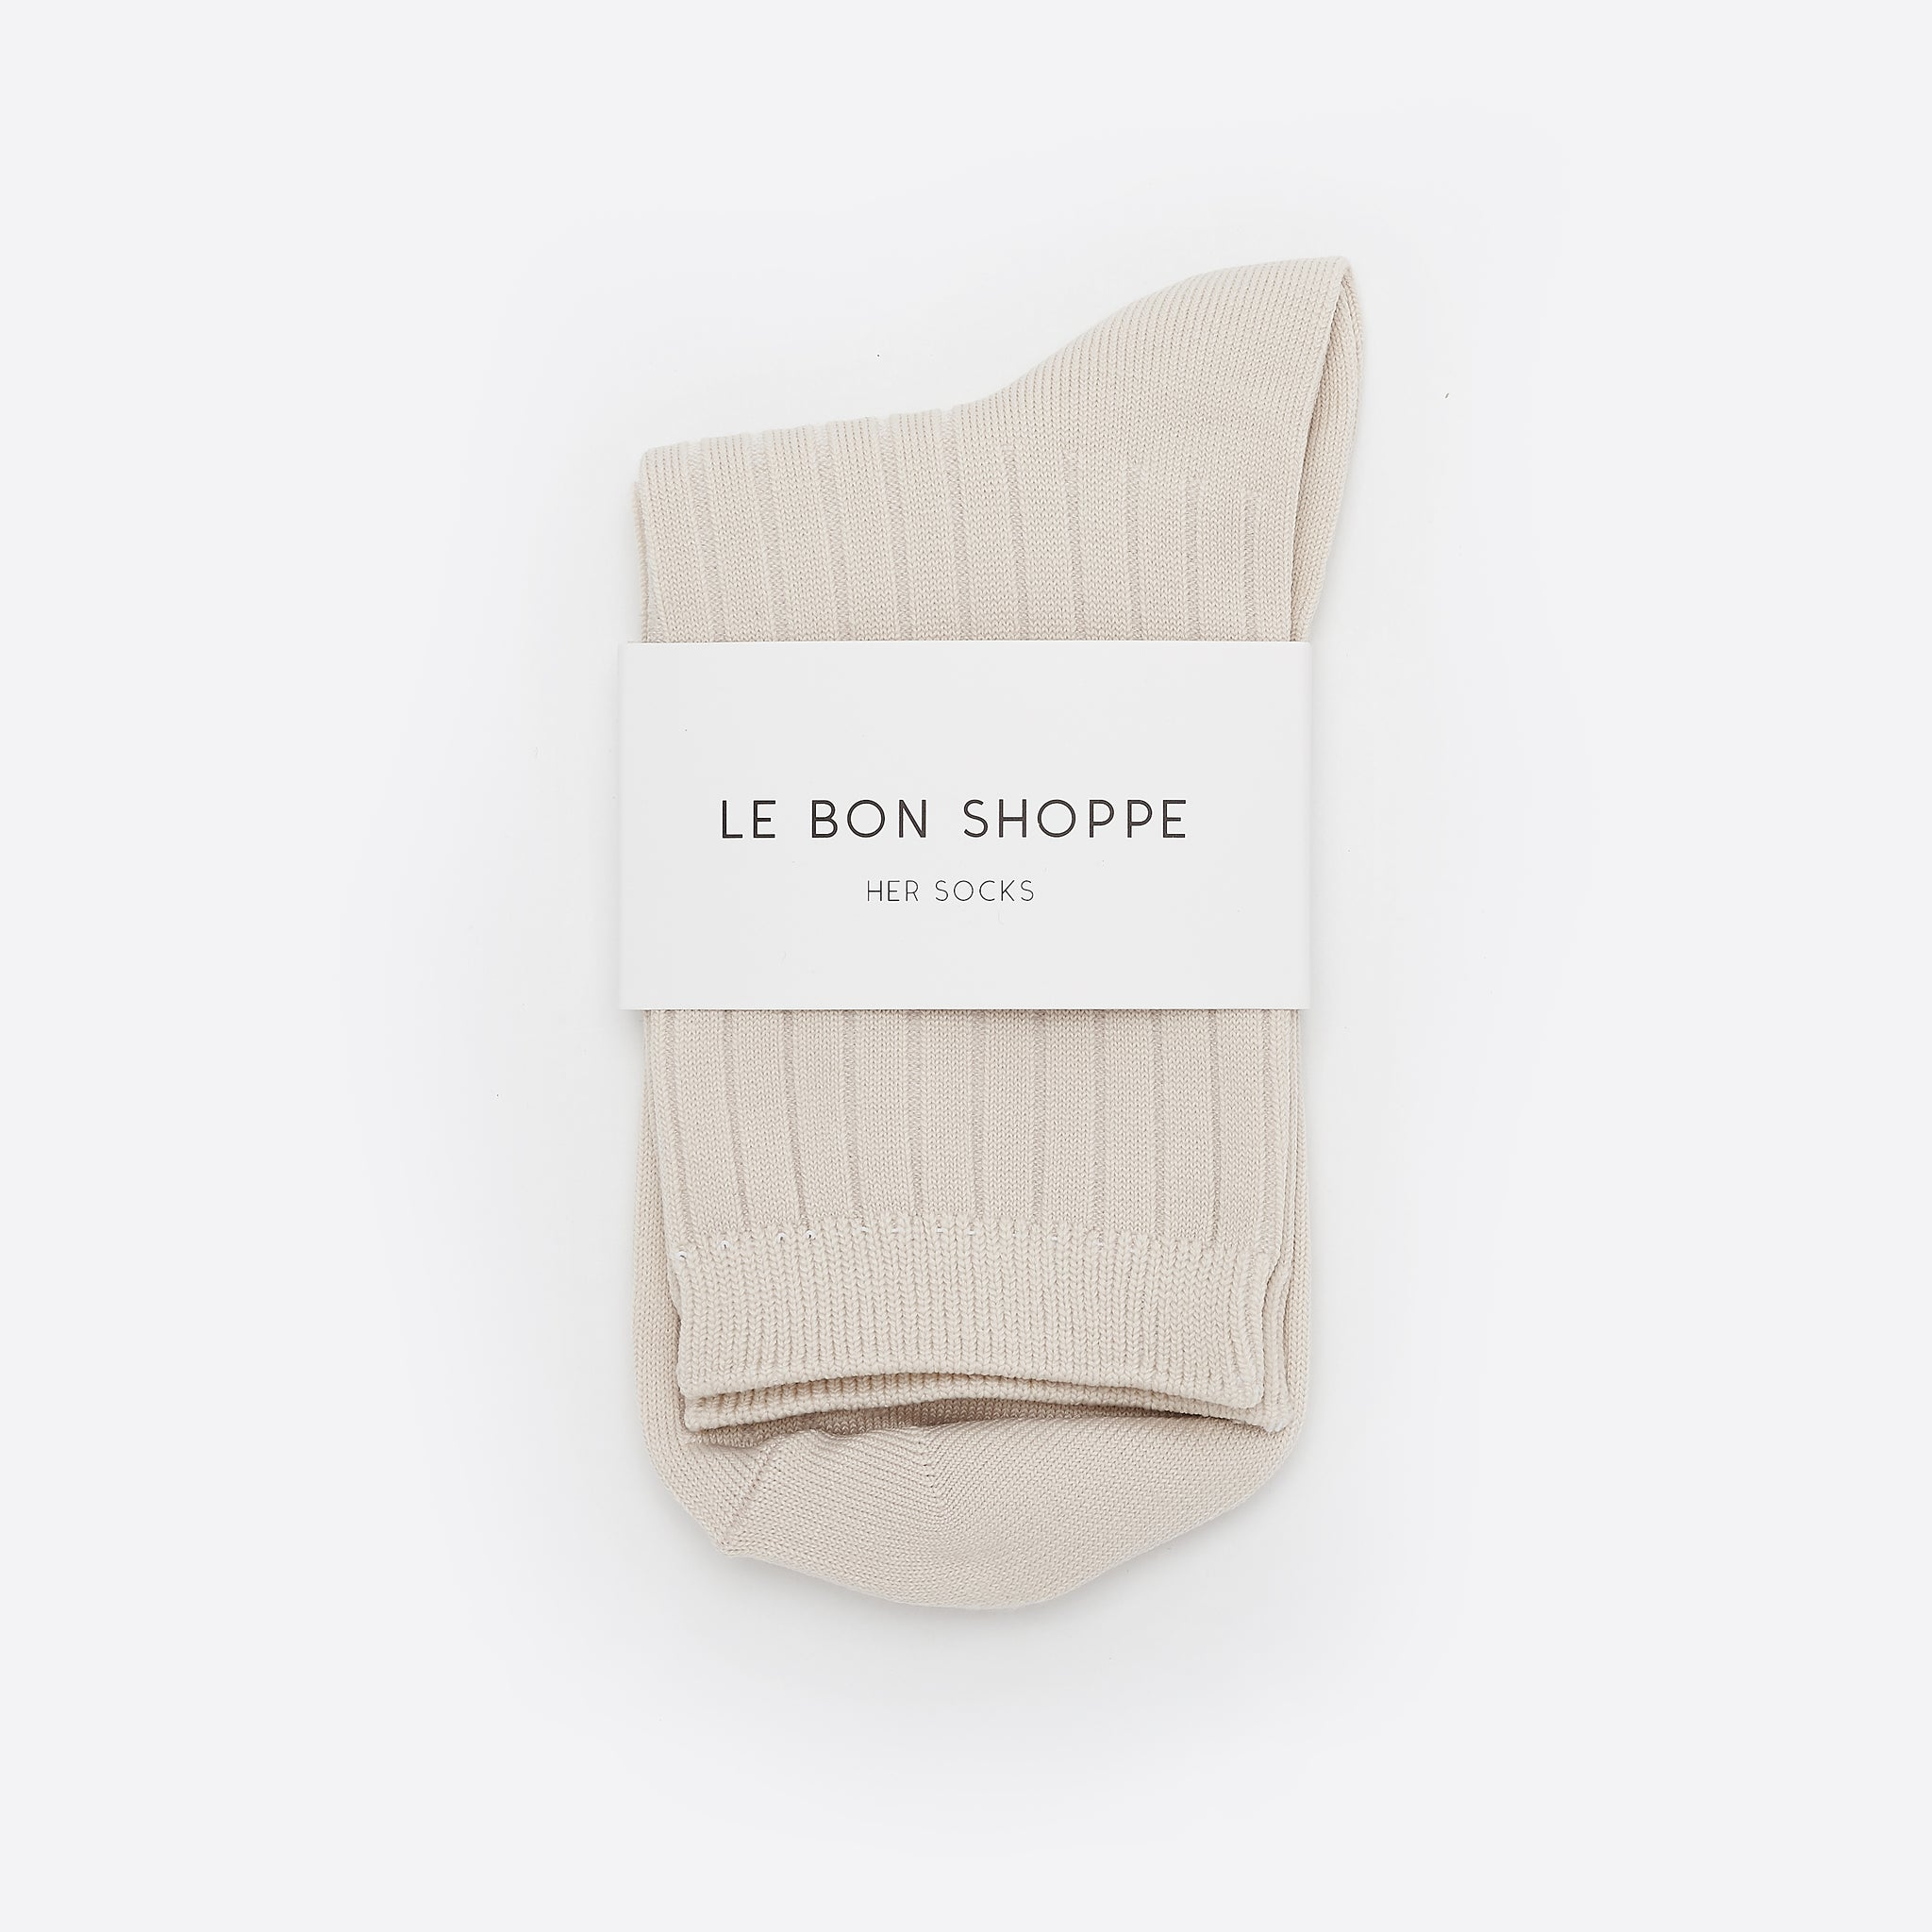 Le Bon Shoppe Her Socks in Bone